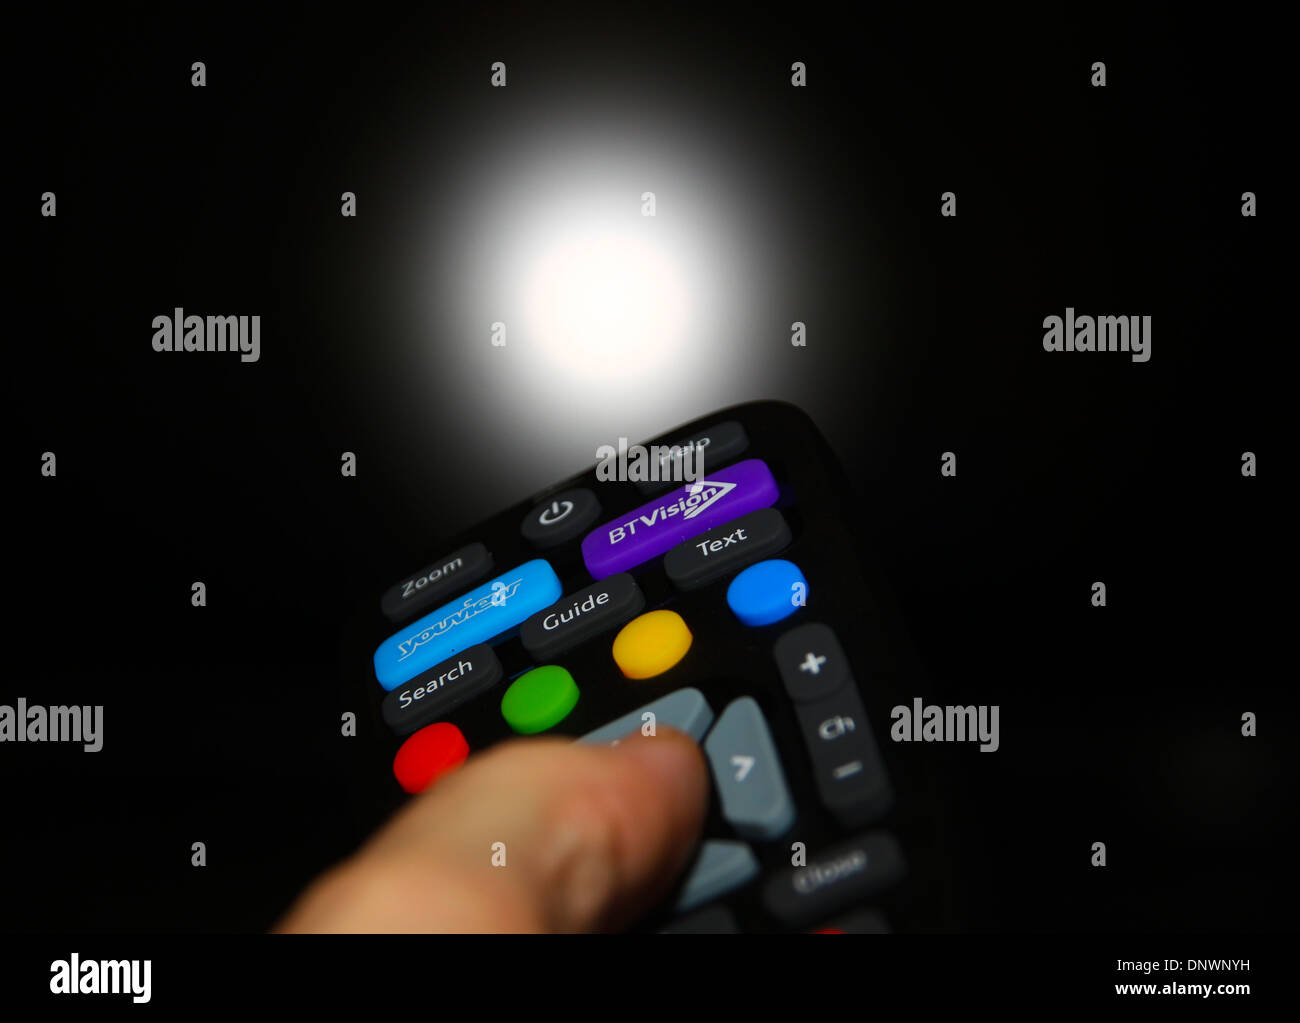 BT Vision Youview remote control handset - Stock Image